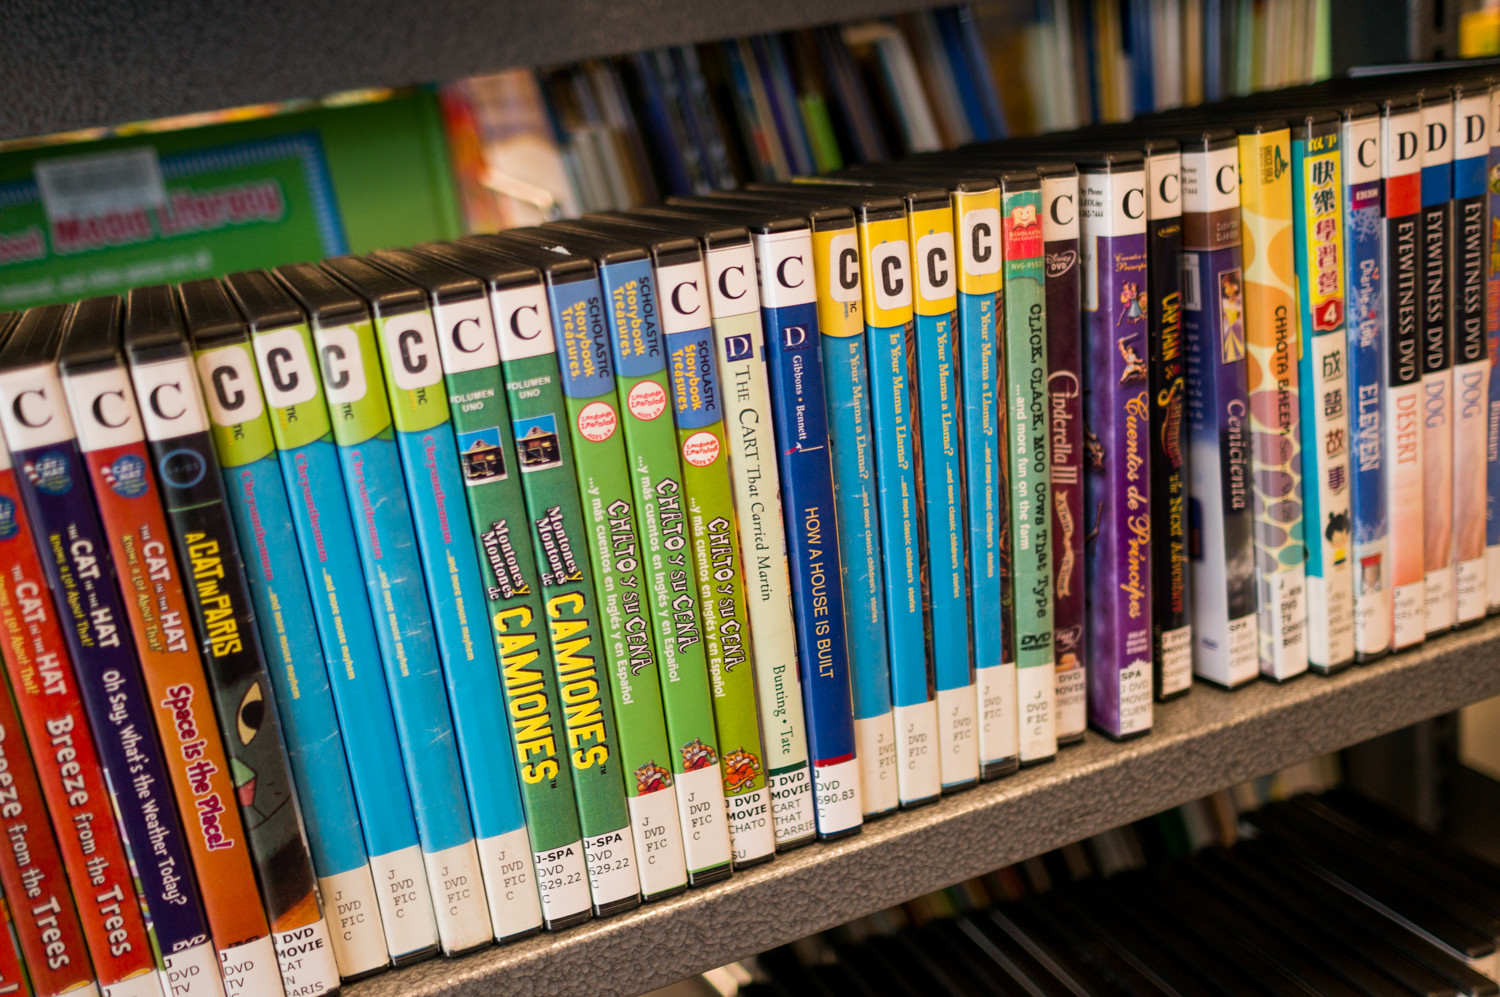 Across the New York Public Library system, DVDs have the highest late fee at $3 per day. Once a person's card has more than $15 in late fees, they are blocked from borrowing more materials. Child and young adult cardholders were recently granted one-time amnesty, where all of their fines were cleared.